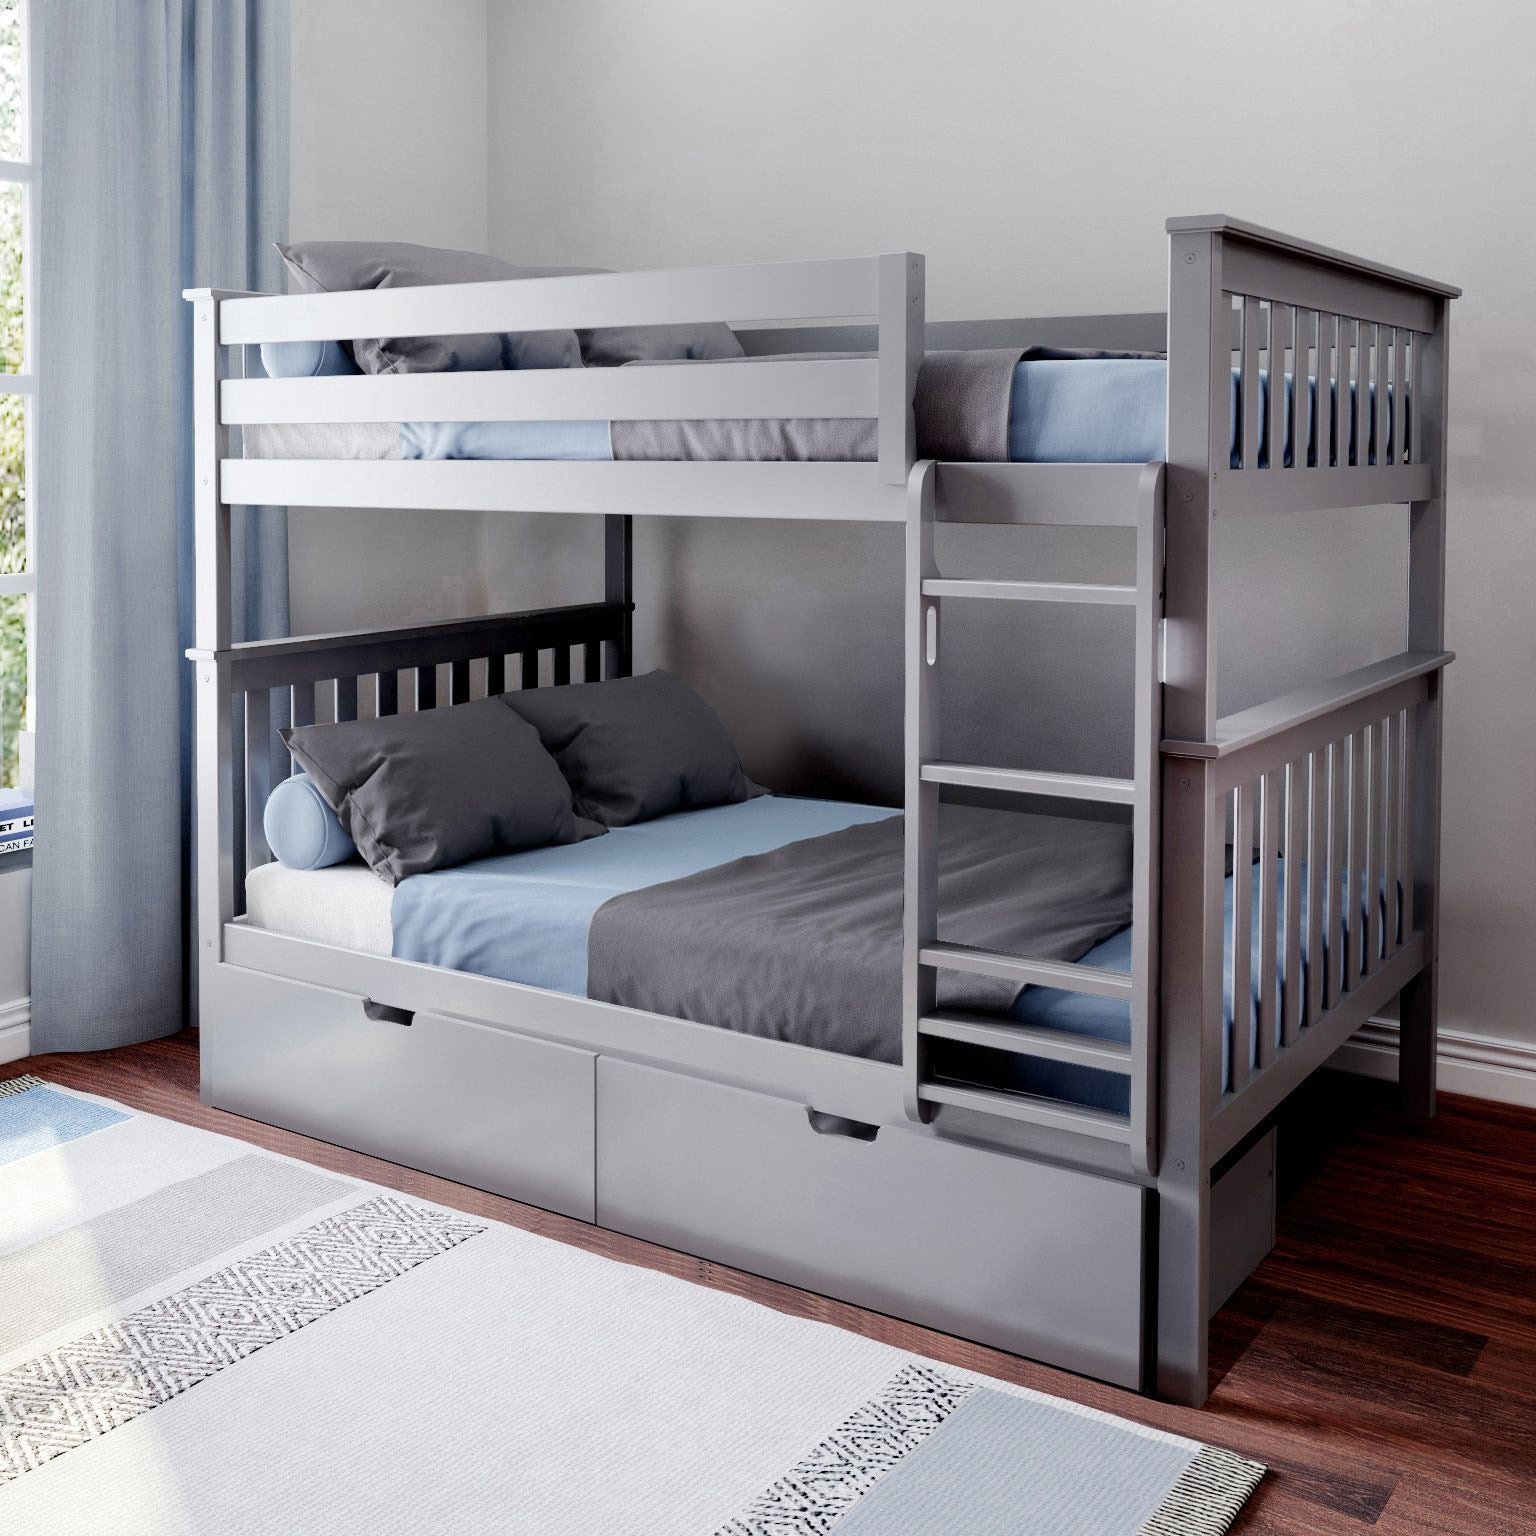 Max Lily Solid Wood Twin Over Full Bunk Bed Storage Drawers Blue Bed Frames Headboards Footboards Kids Furniture Guardebem Com